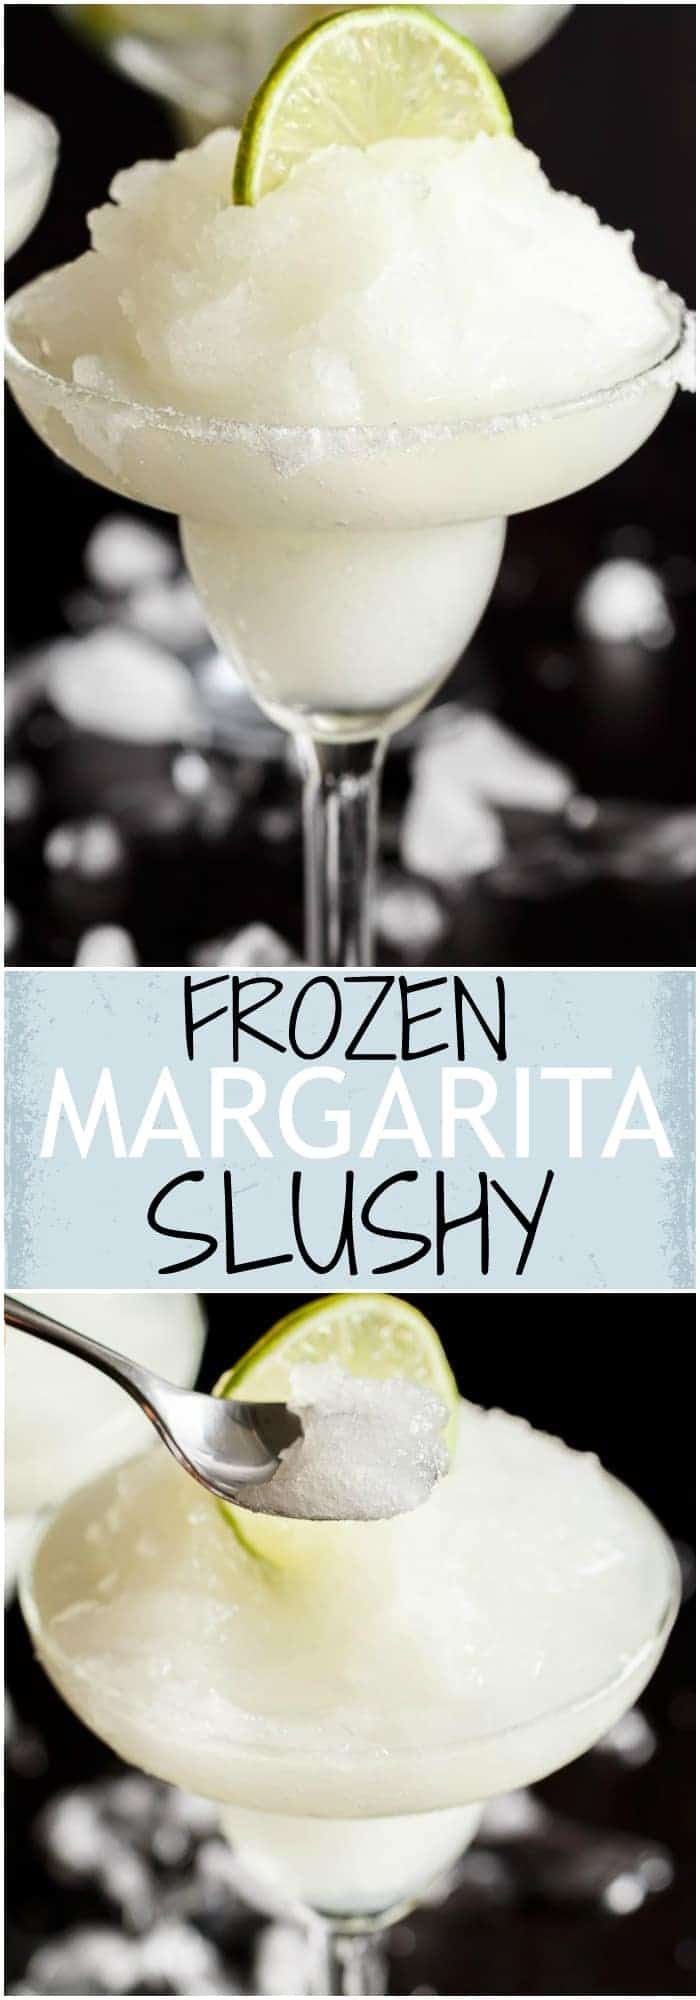 Frozen Margarita Slushy blends the original Margarita made with Tequila and fresh lime juice with ice cubes to make a refreshing icy drink! #wineglasswriter